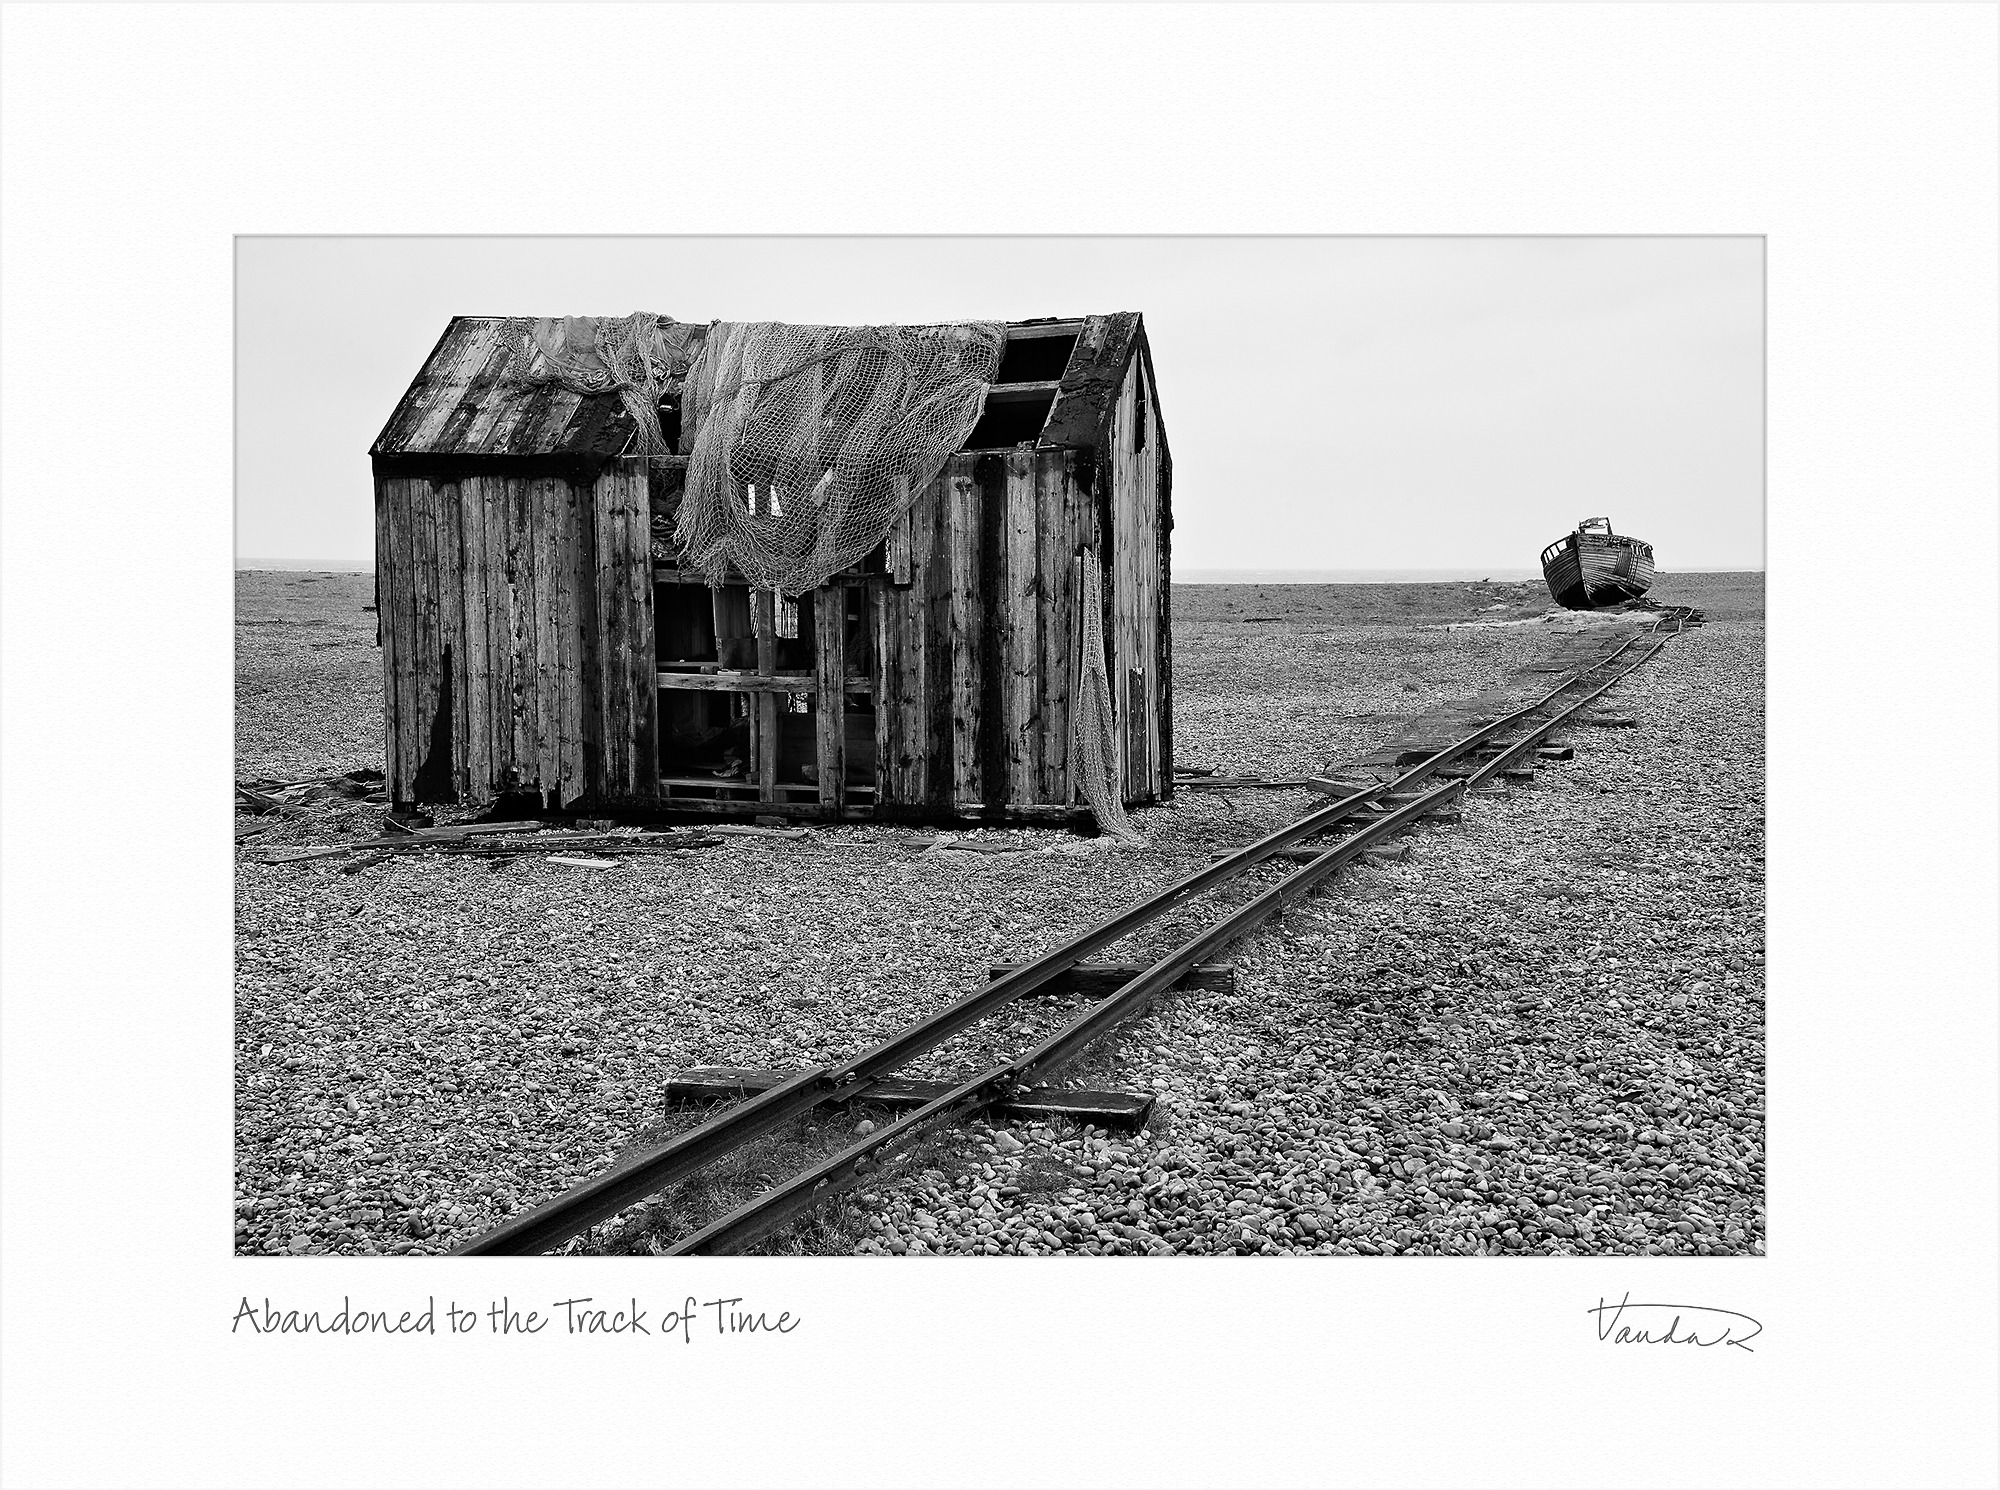 Abandoned to the Track of Time